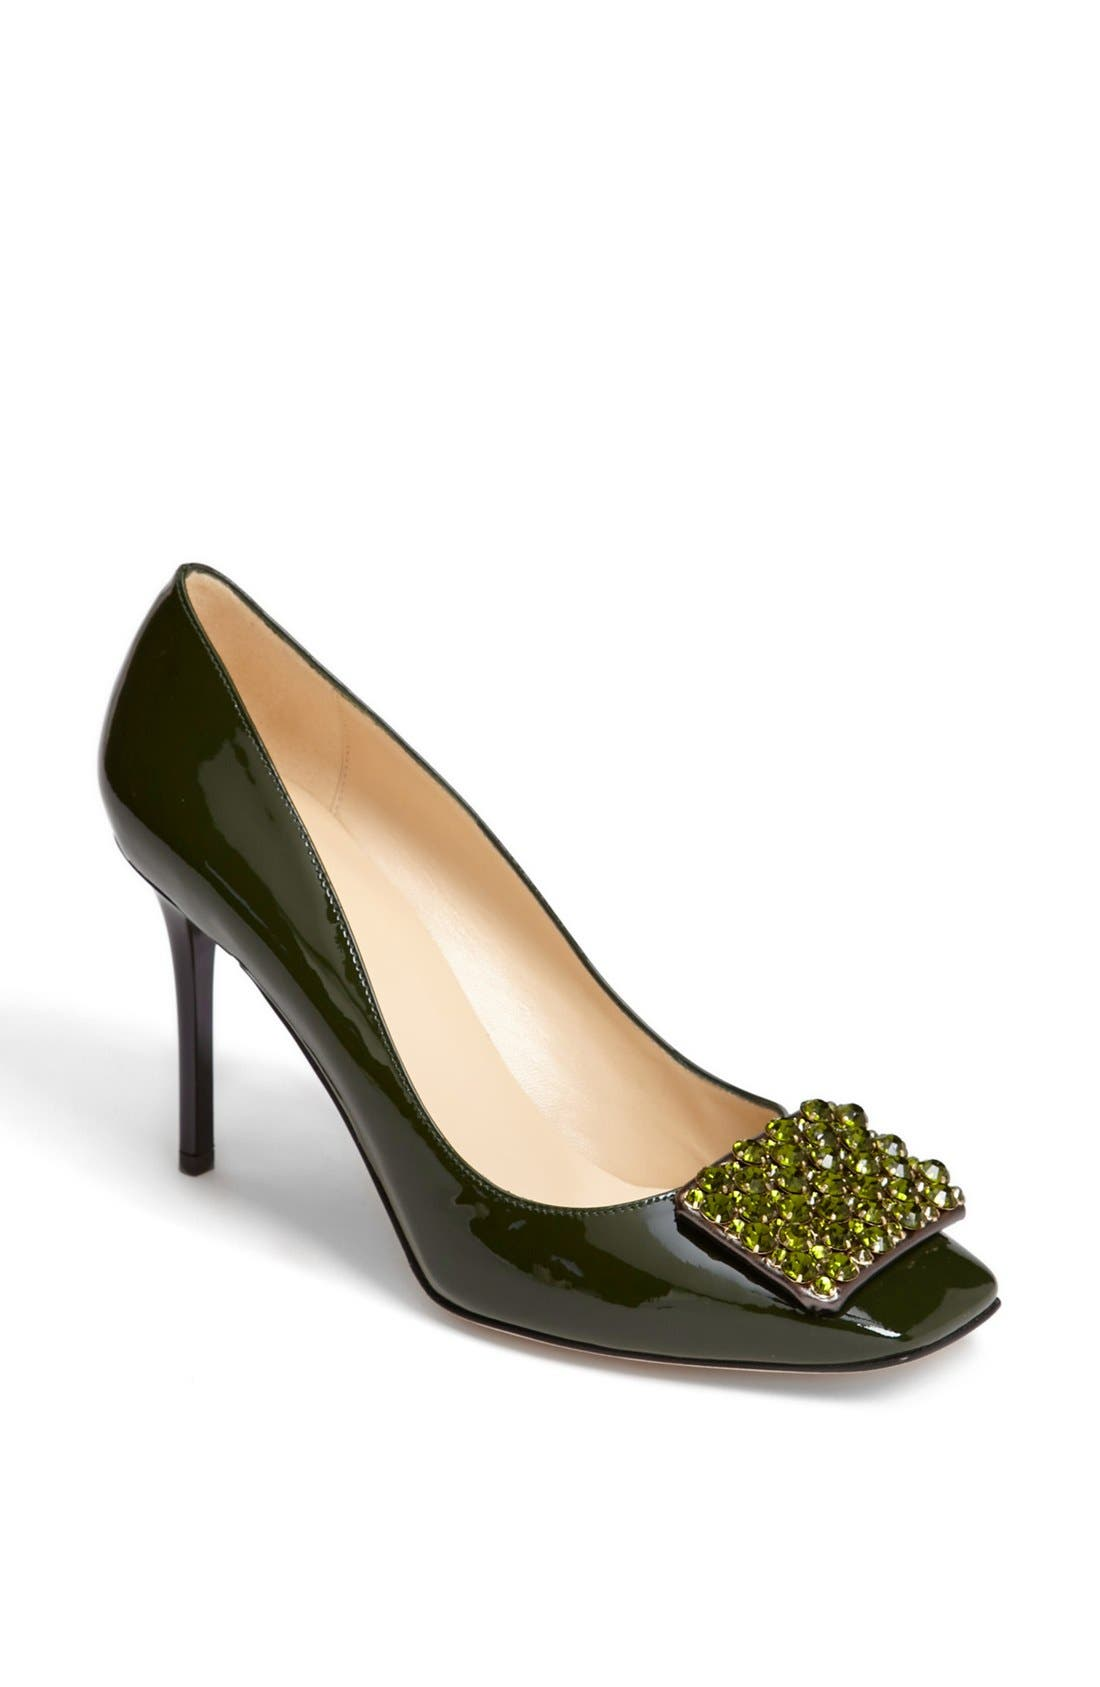 Alternate Image 1 Selected - kate spade new york 'happy' pump